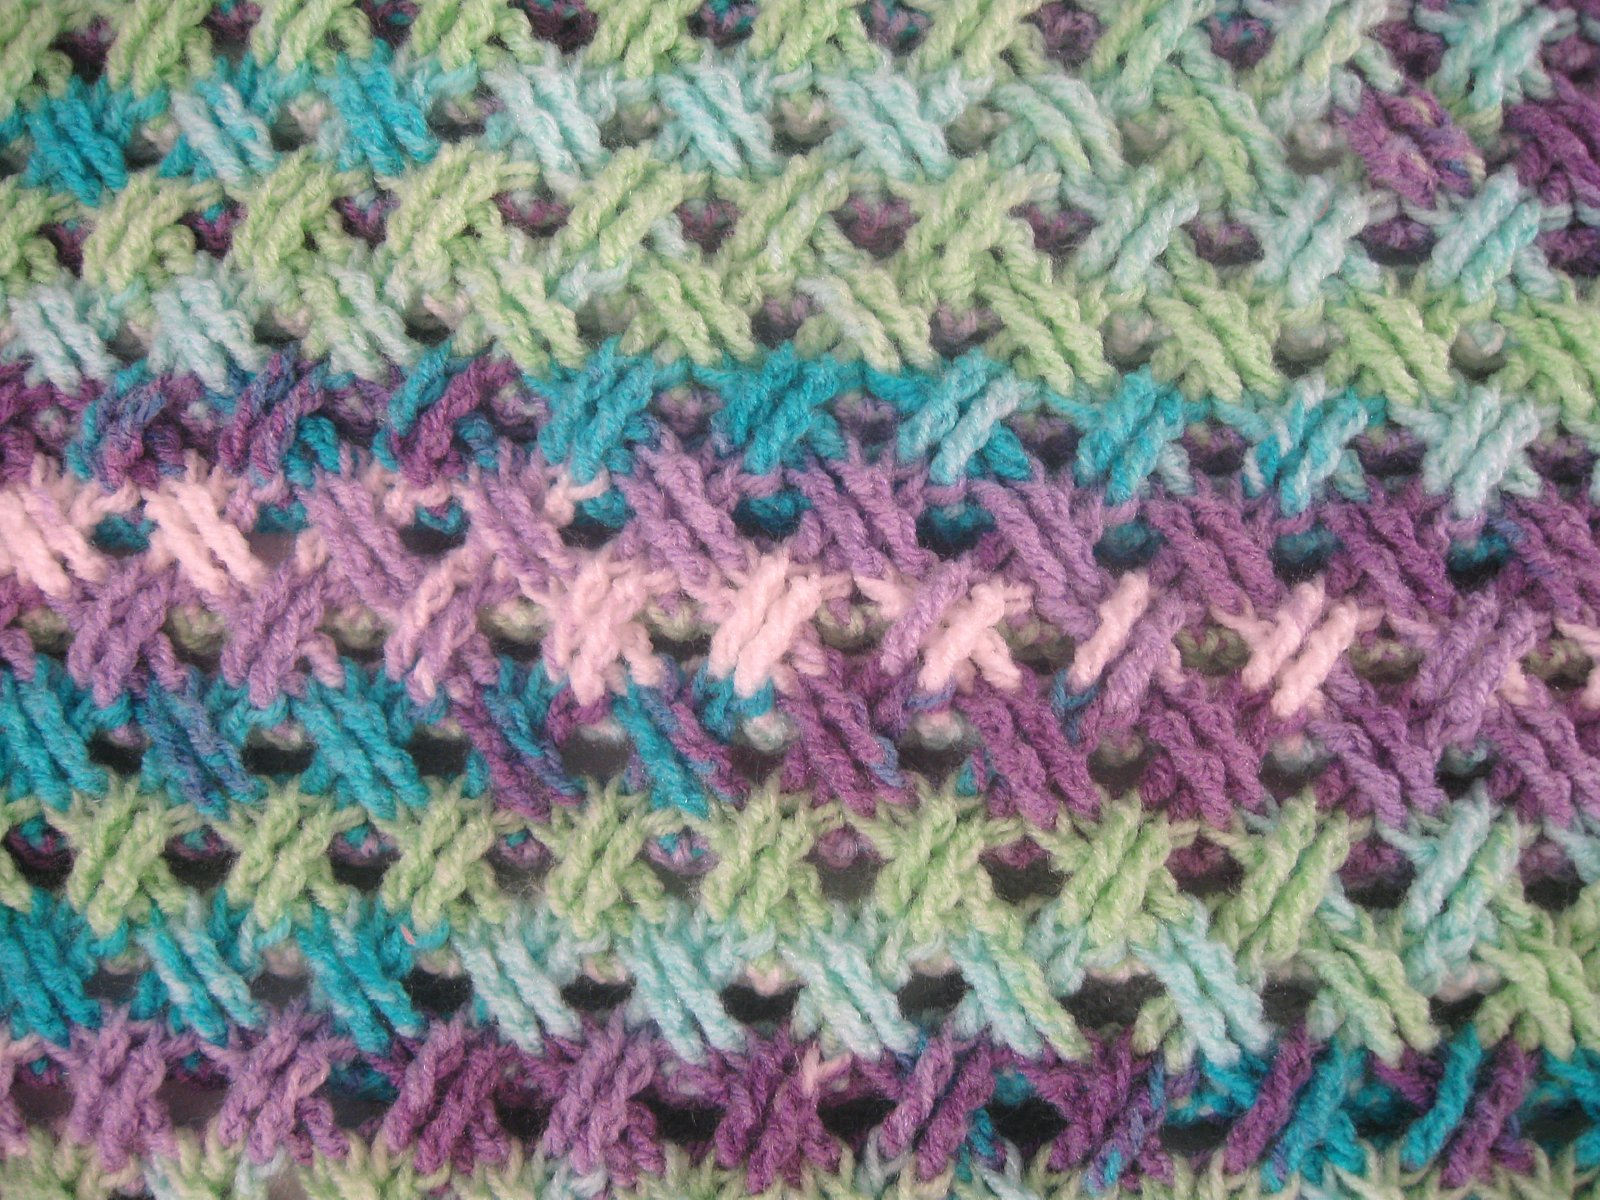 http://www.meladorascreations.com/wp-content/uploads/2014/10/Interweave-Cable-Stitch-Shot-of-stitch-Web-display.jpg-image